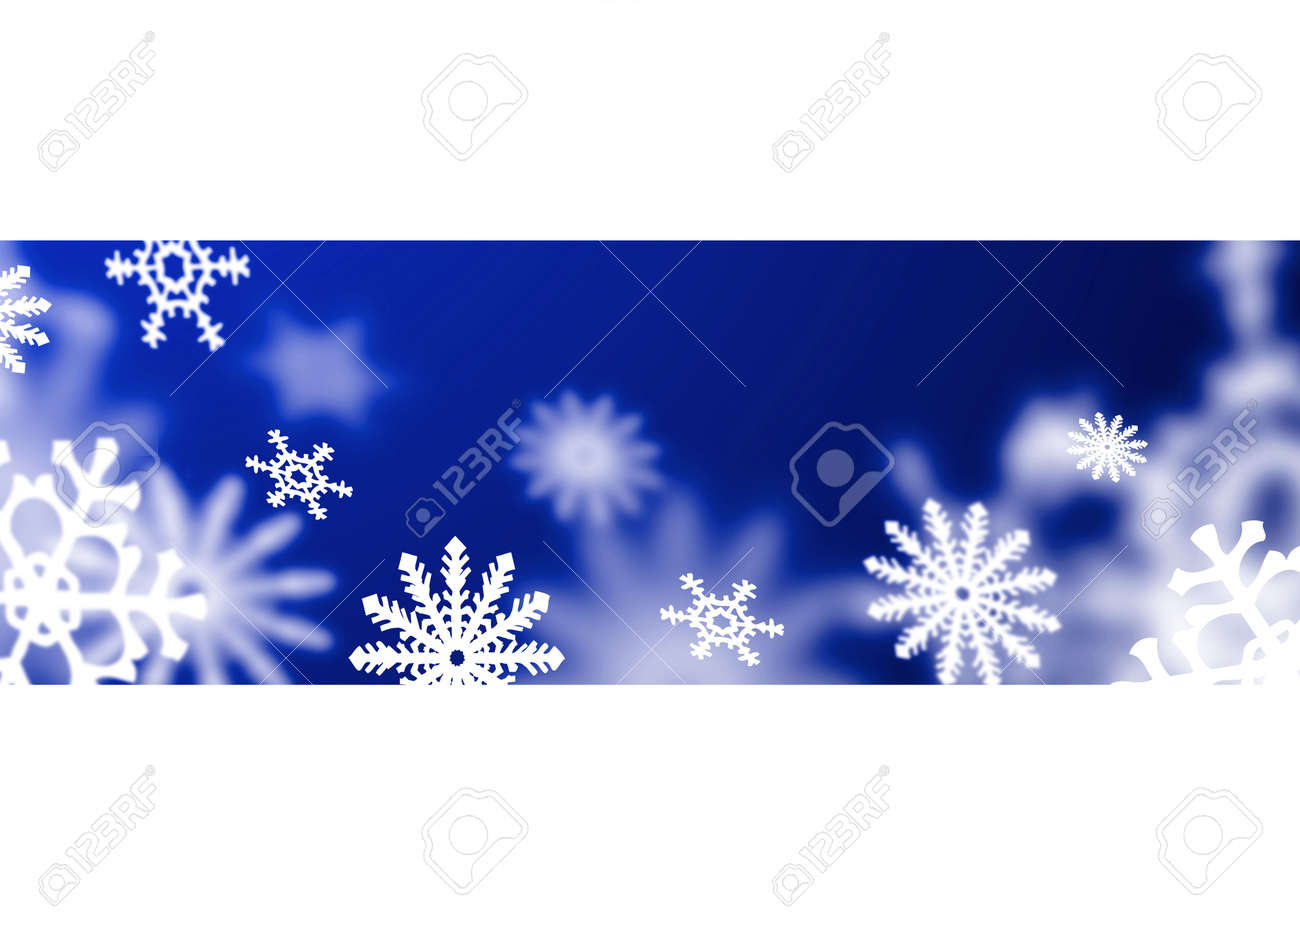 Modern christmas image with room to add your own text Stock Photo - 3573041